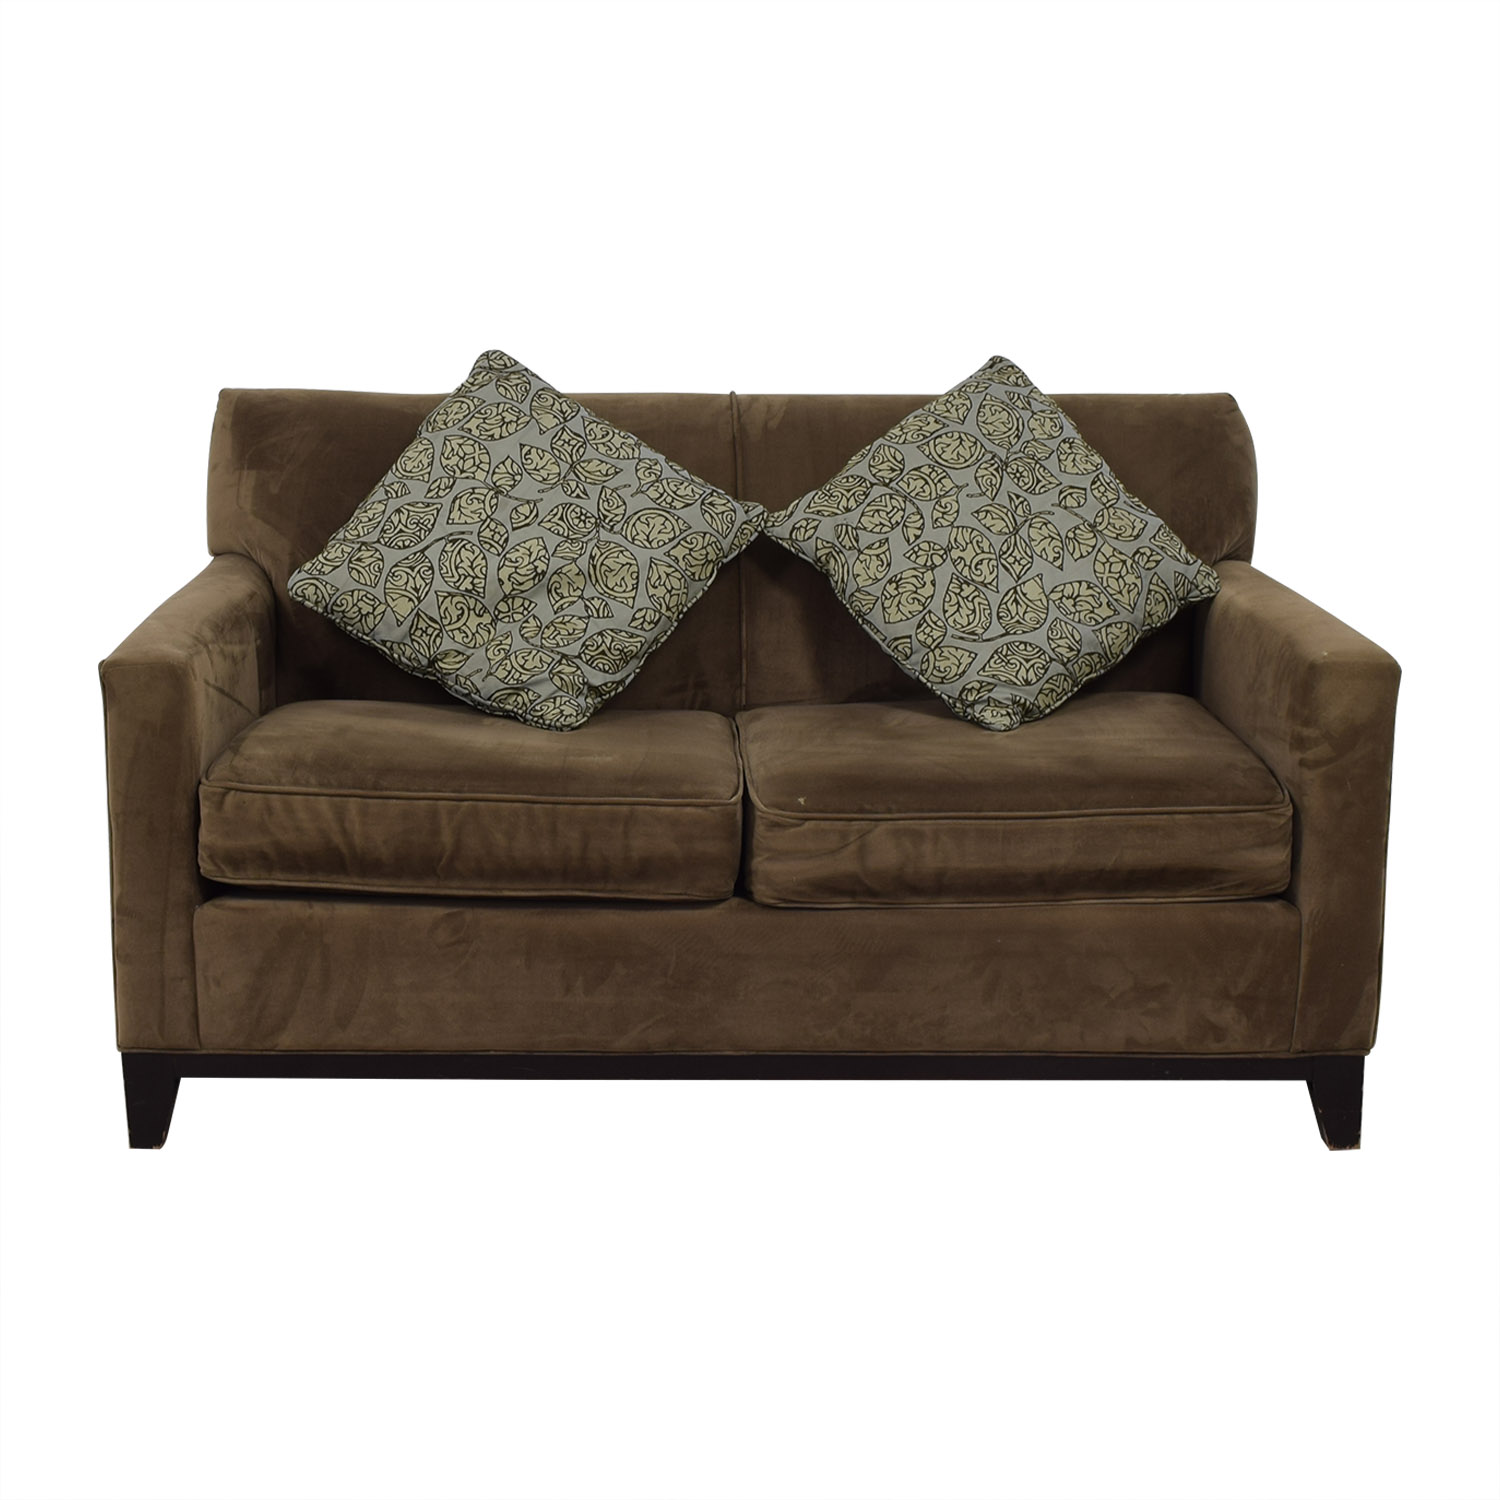 77 Off Rowe Furniture Martin Grey Loveseat Sofas